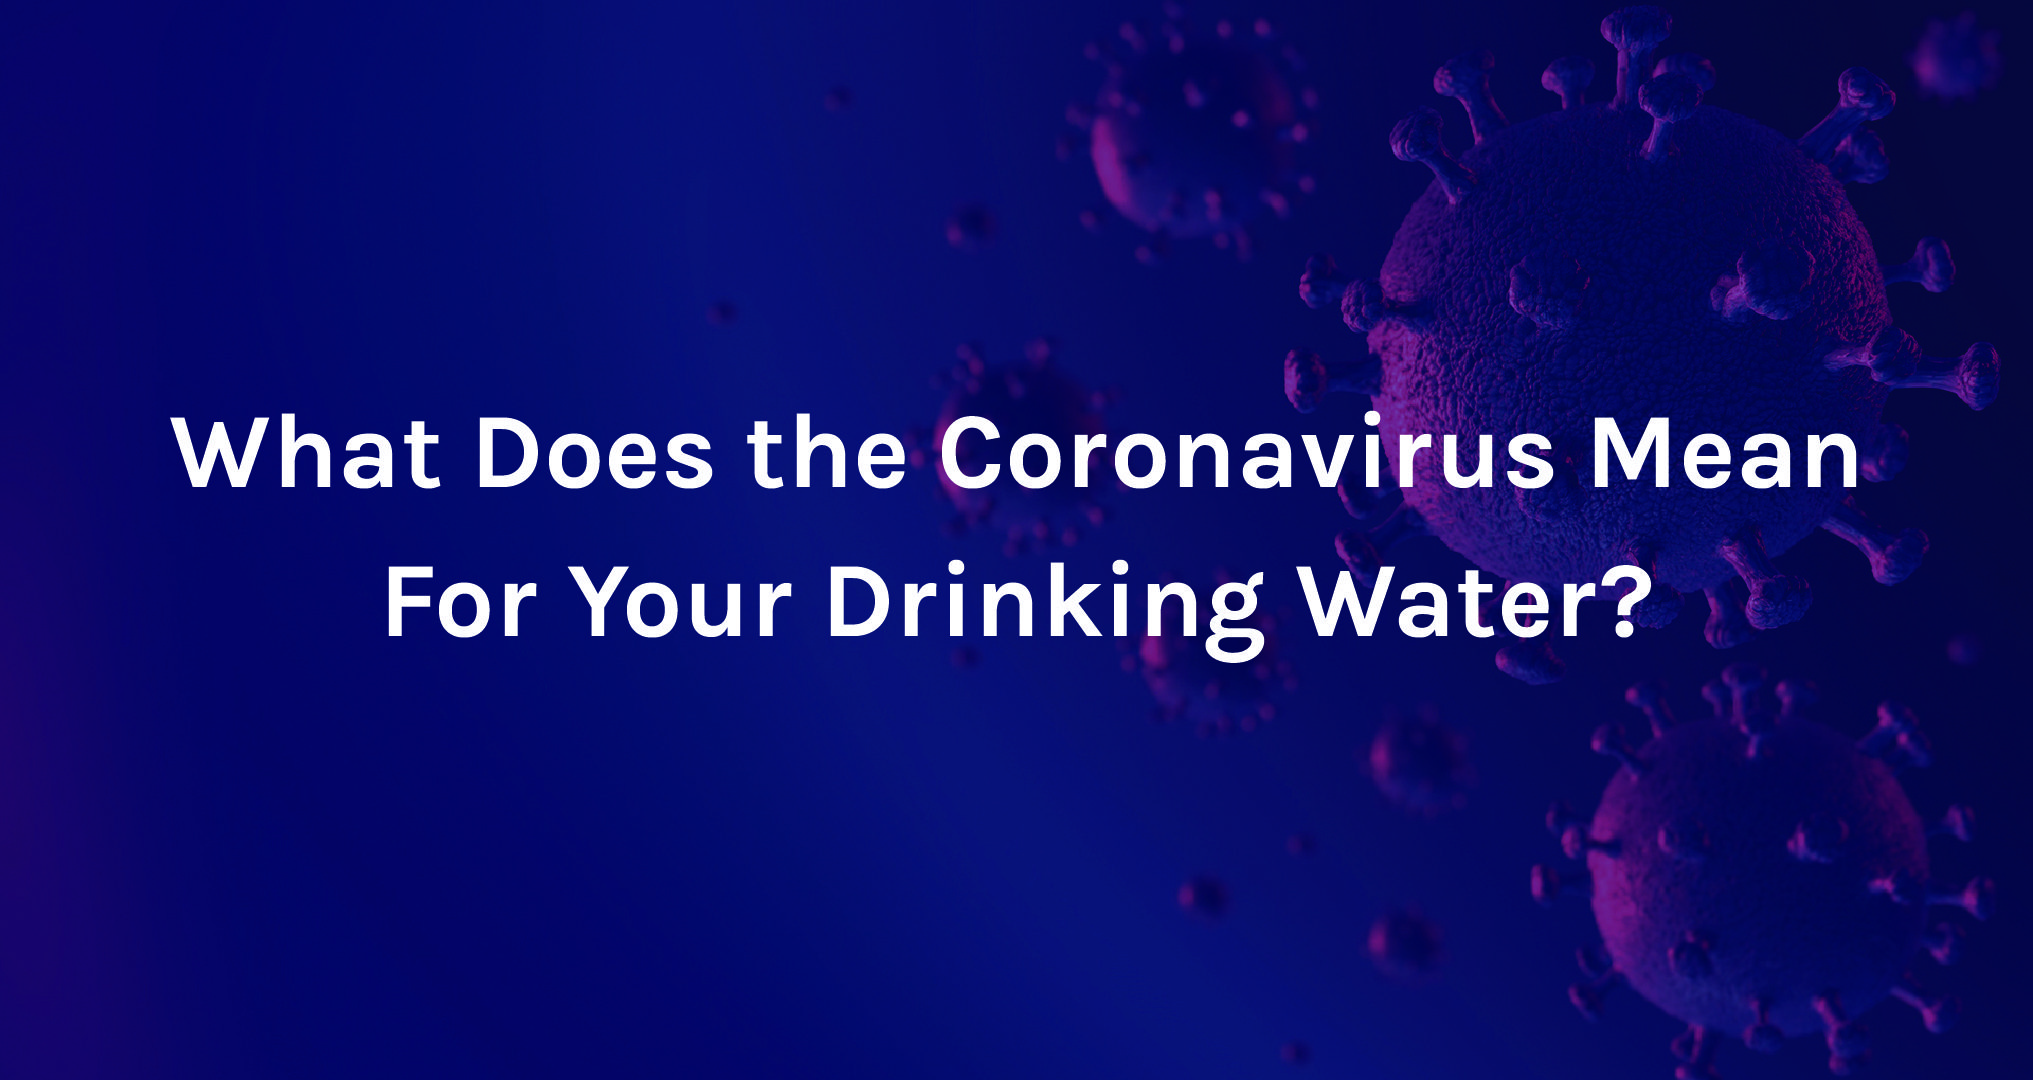 Coronavirus Background with text saying What does the coronavirus mean for your drinking water?